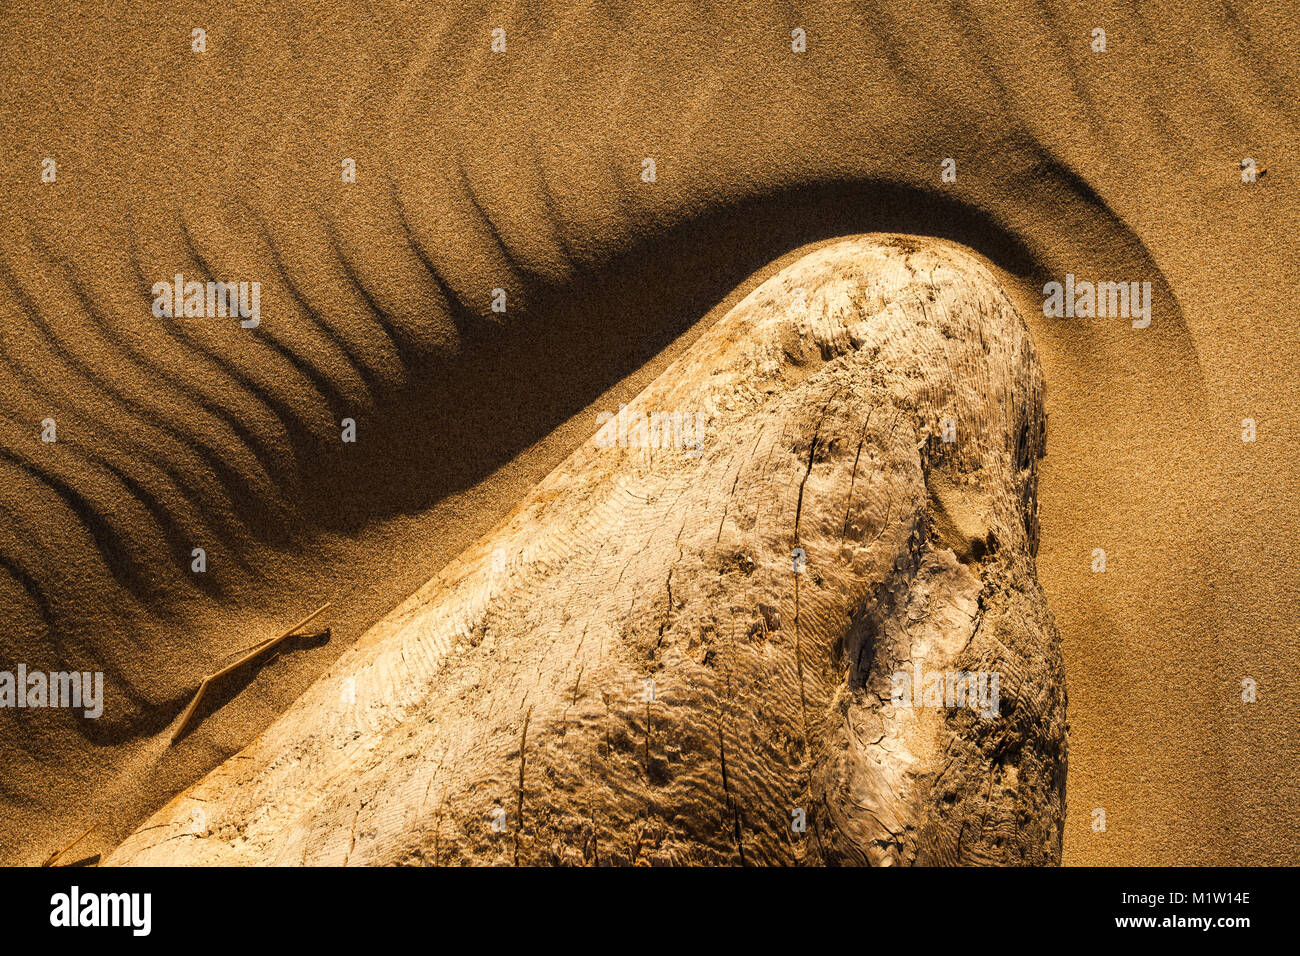 sidelit details of a sandy beach and driftwood - Stock Image